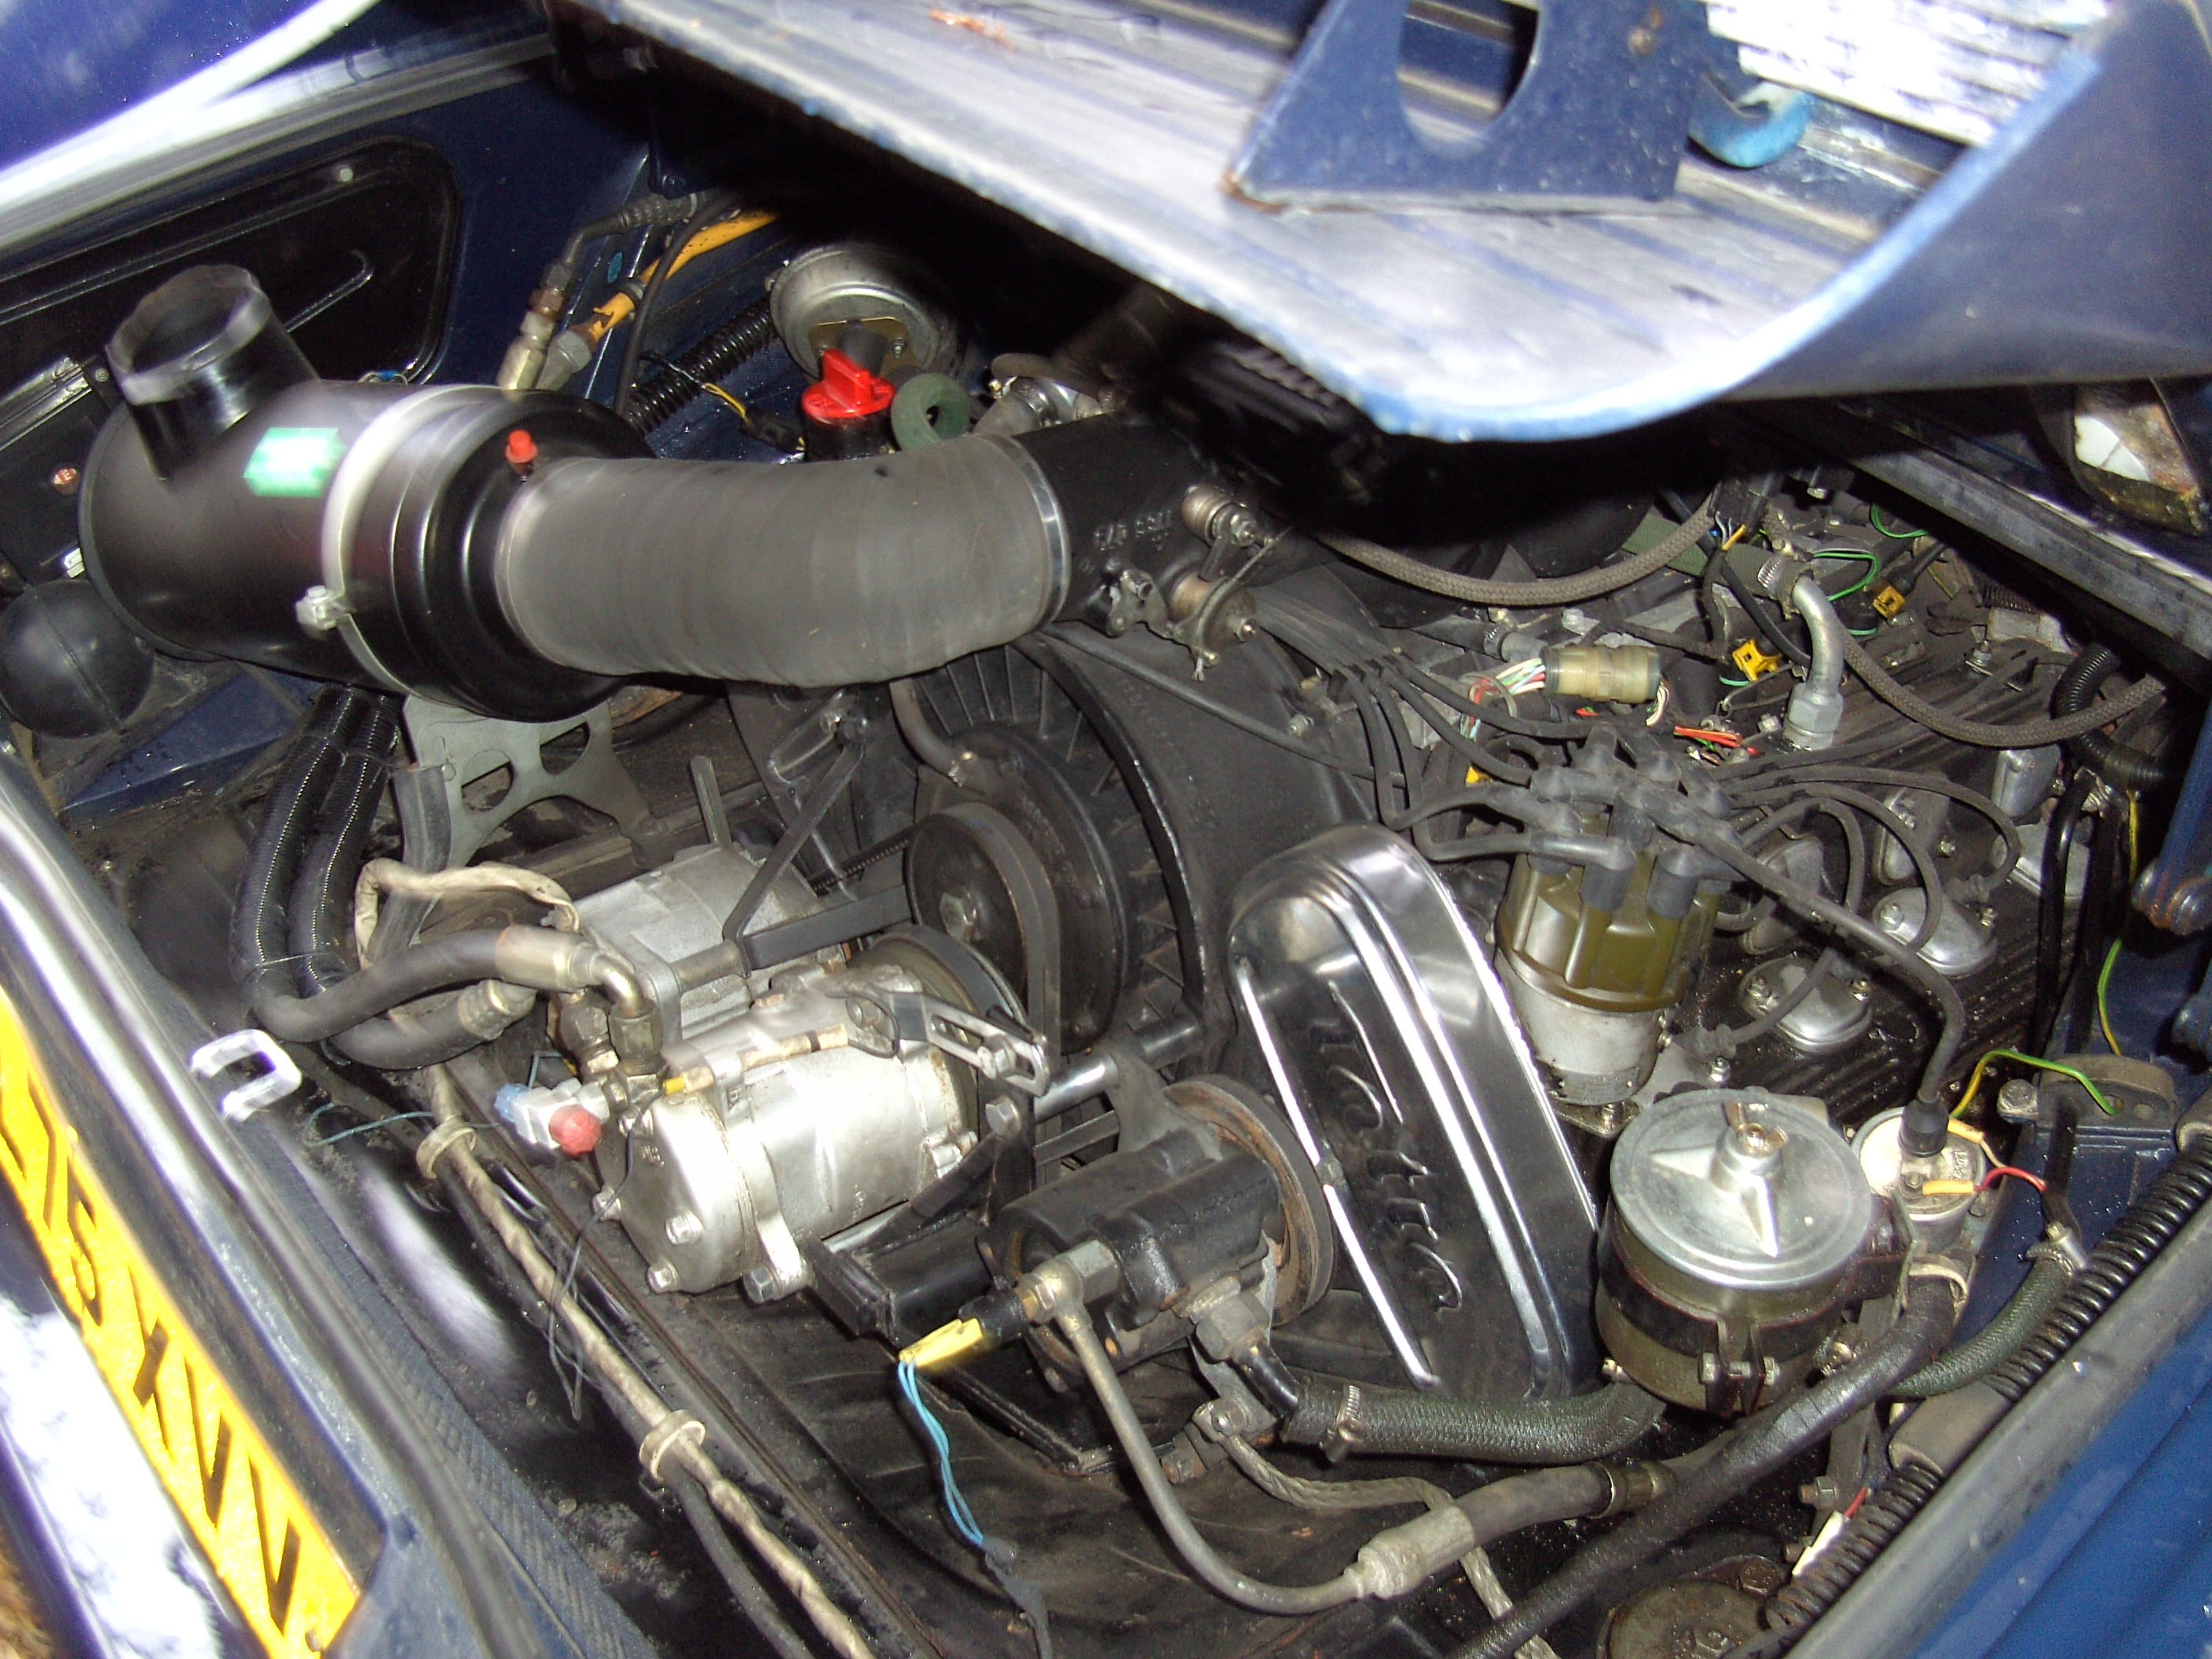 Opening the engine bay of a Tatra 613 can be a bit of a jaw dropping experience. Nonetheless that alloy air cooled V8 is well positioned in the car. It's a layout that is imaginative and effective. (Picture courtesy davydutchy at Flickr)